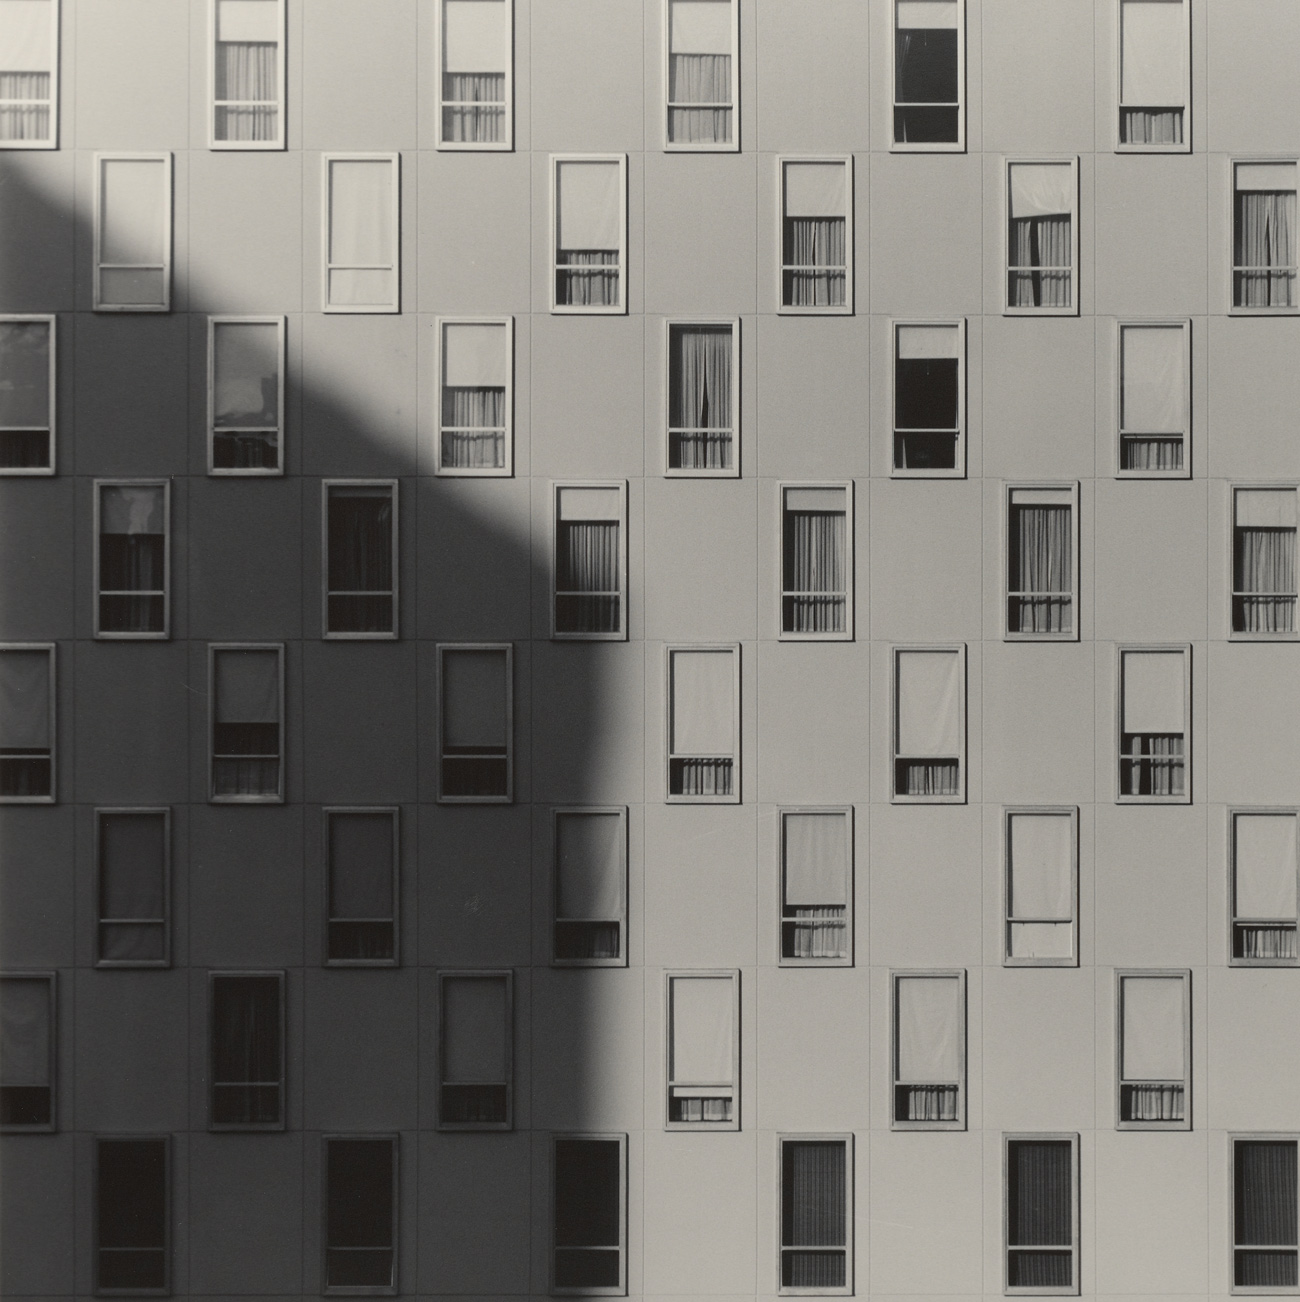 Many windows in a checkerboard pattern, all uniformly sized, some with blinds open, closed, or partially pulled down. A shadow is cast from the left.